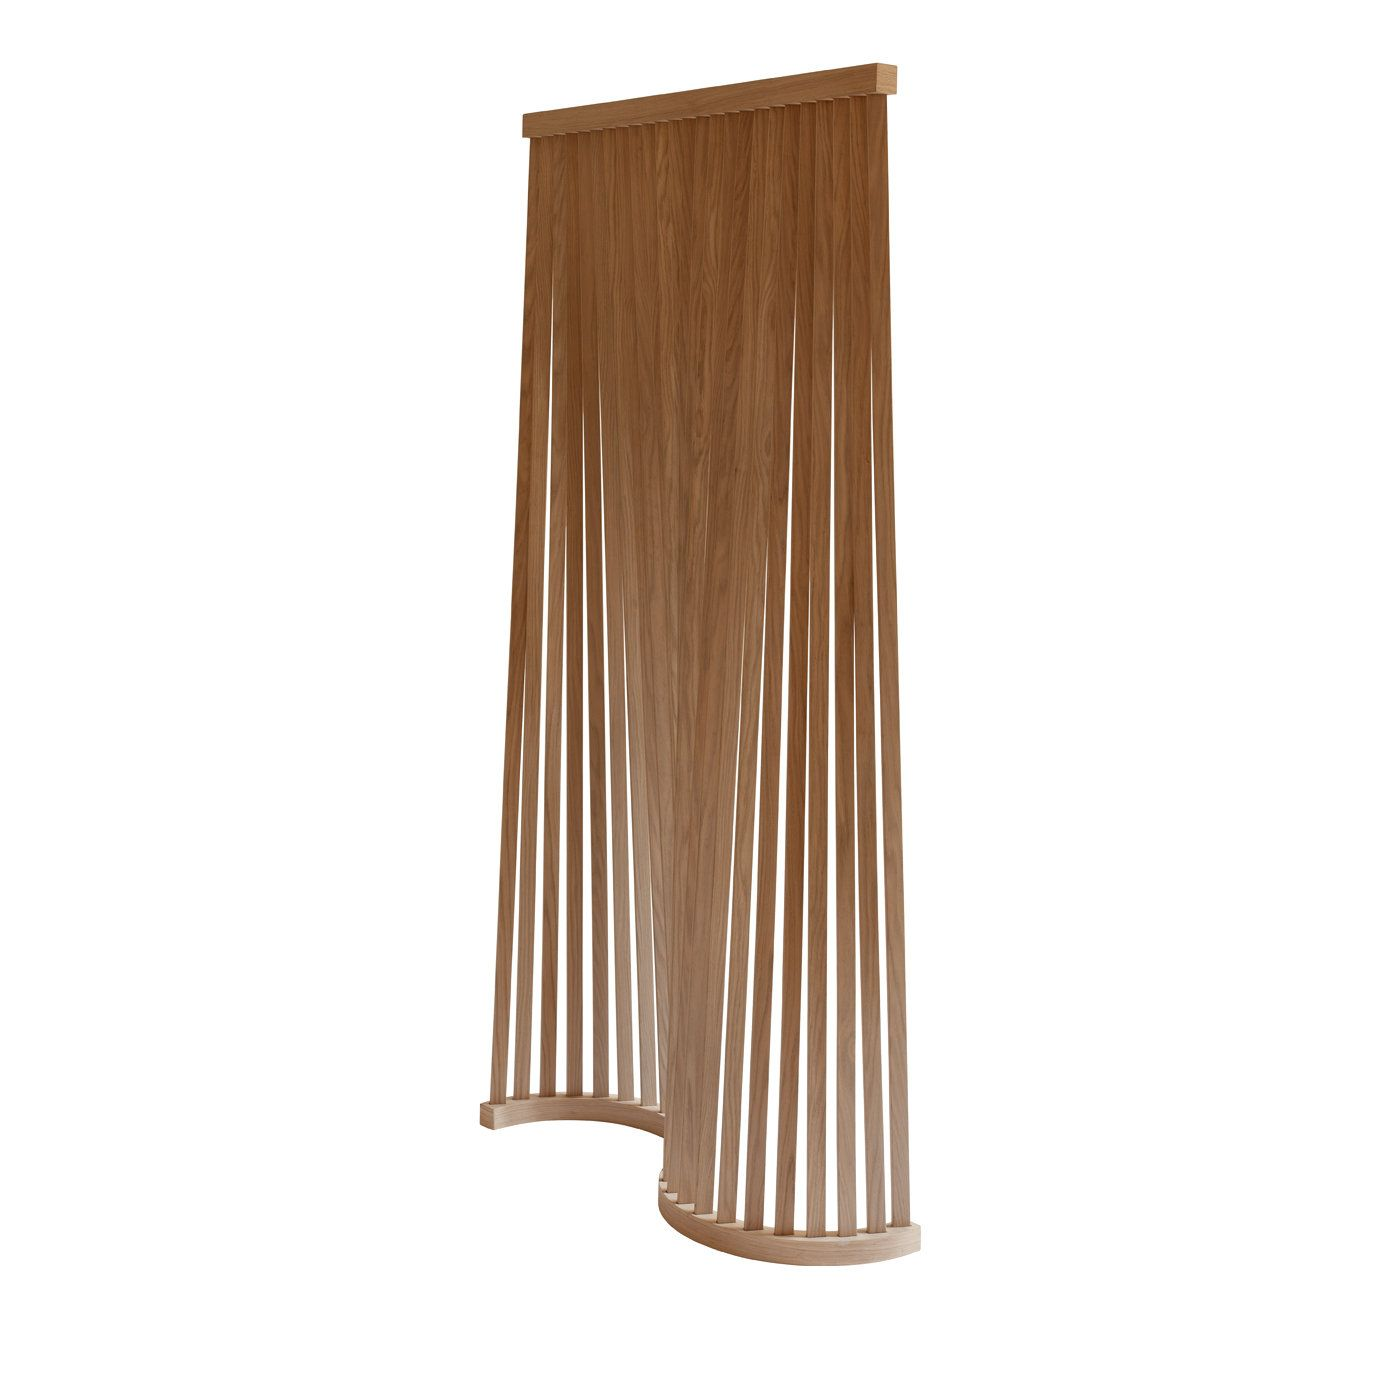 Mori is a furniture piece that expresses the opposite aesthetics of full and empty. Its appearance depends on where you look. As in a forest, some trees are visible while others aren't, we enjoy the environment without distinguishing individual forms. This room divider by Slow Wood consists of a self standing structure in solid ash wood, composed of two crossbeams – one S-shaped at the bottom and a straight one at the top – to which woods strips are applied conferring fluidity, sinuosity…